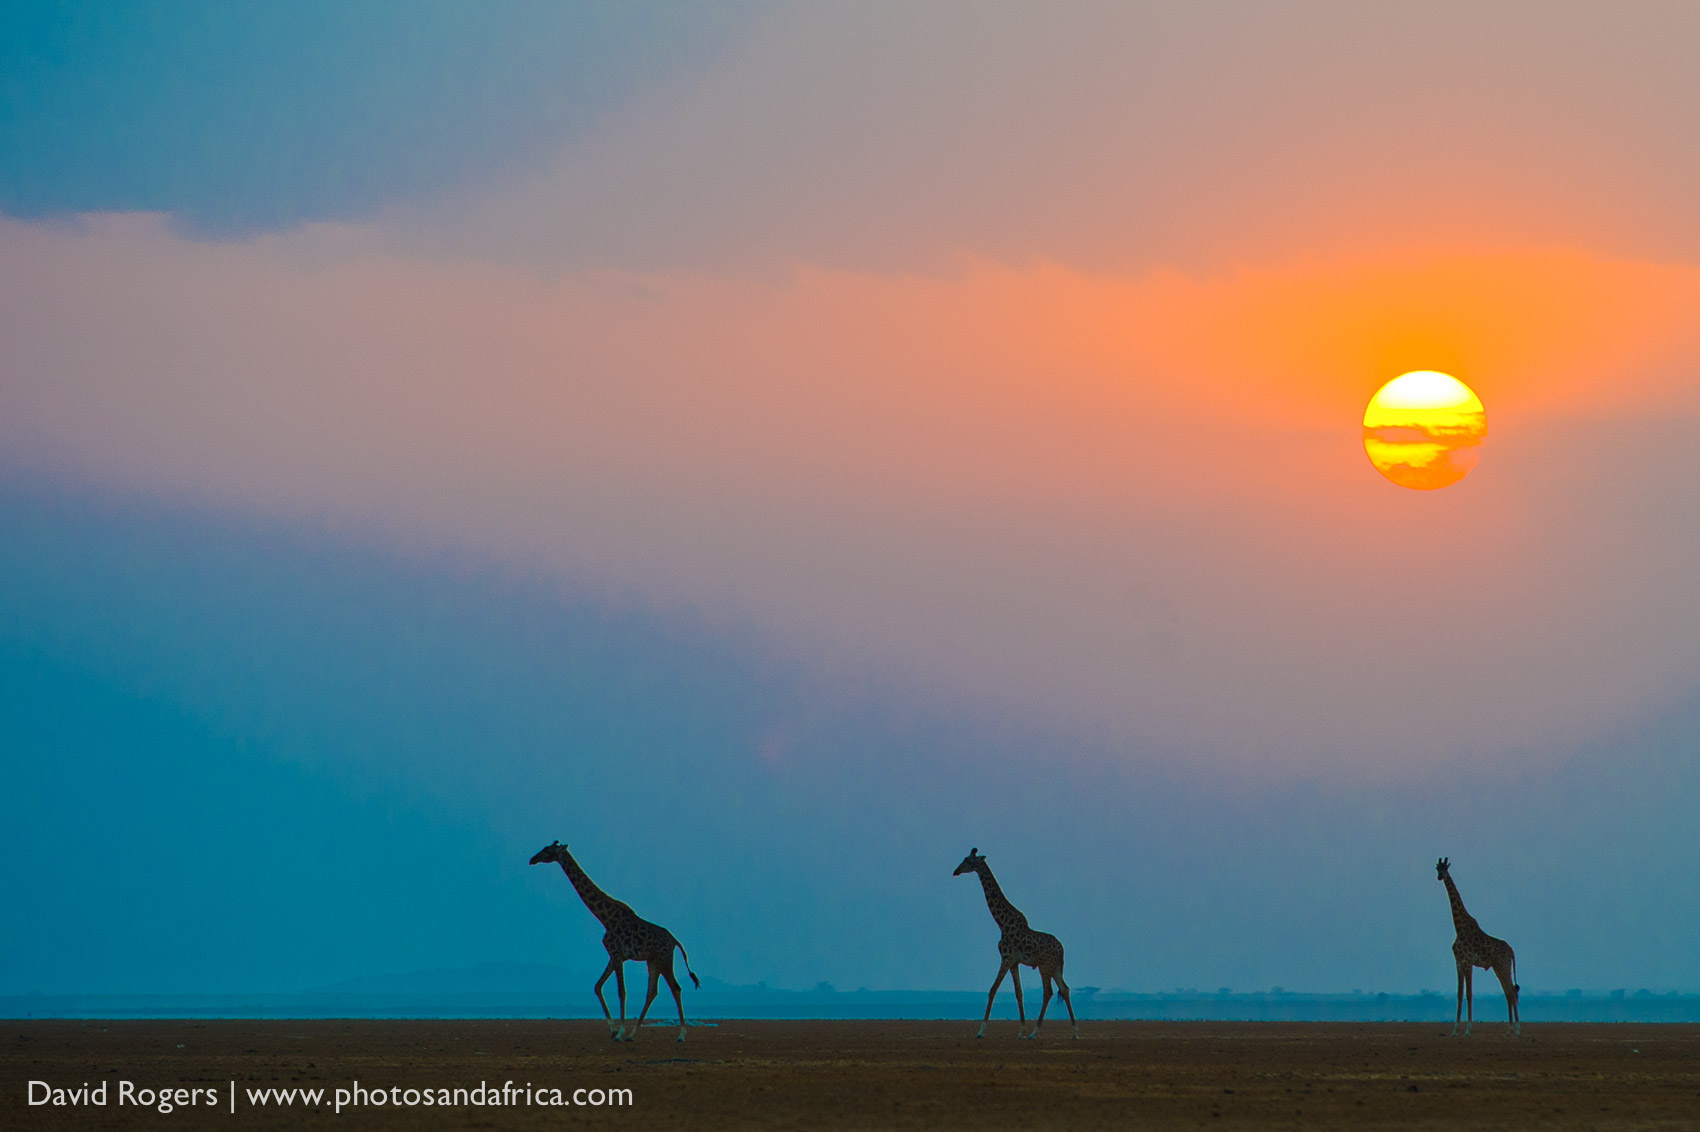 Kenya, Amboseli National Park, sunset with the silhouettes of three giraffe ©David Rogers